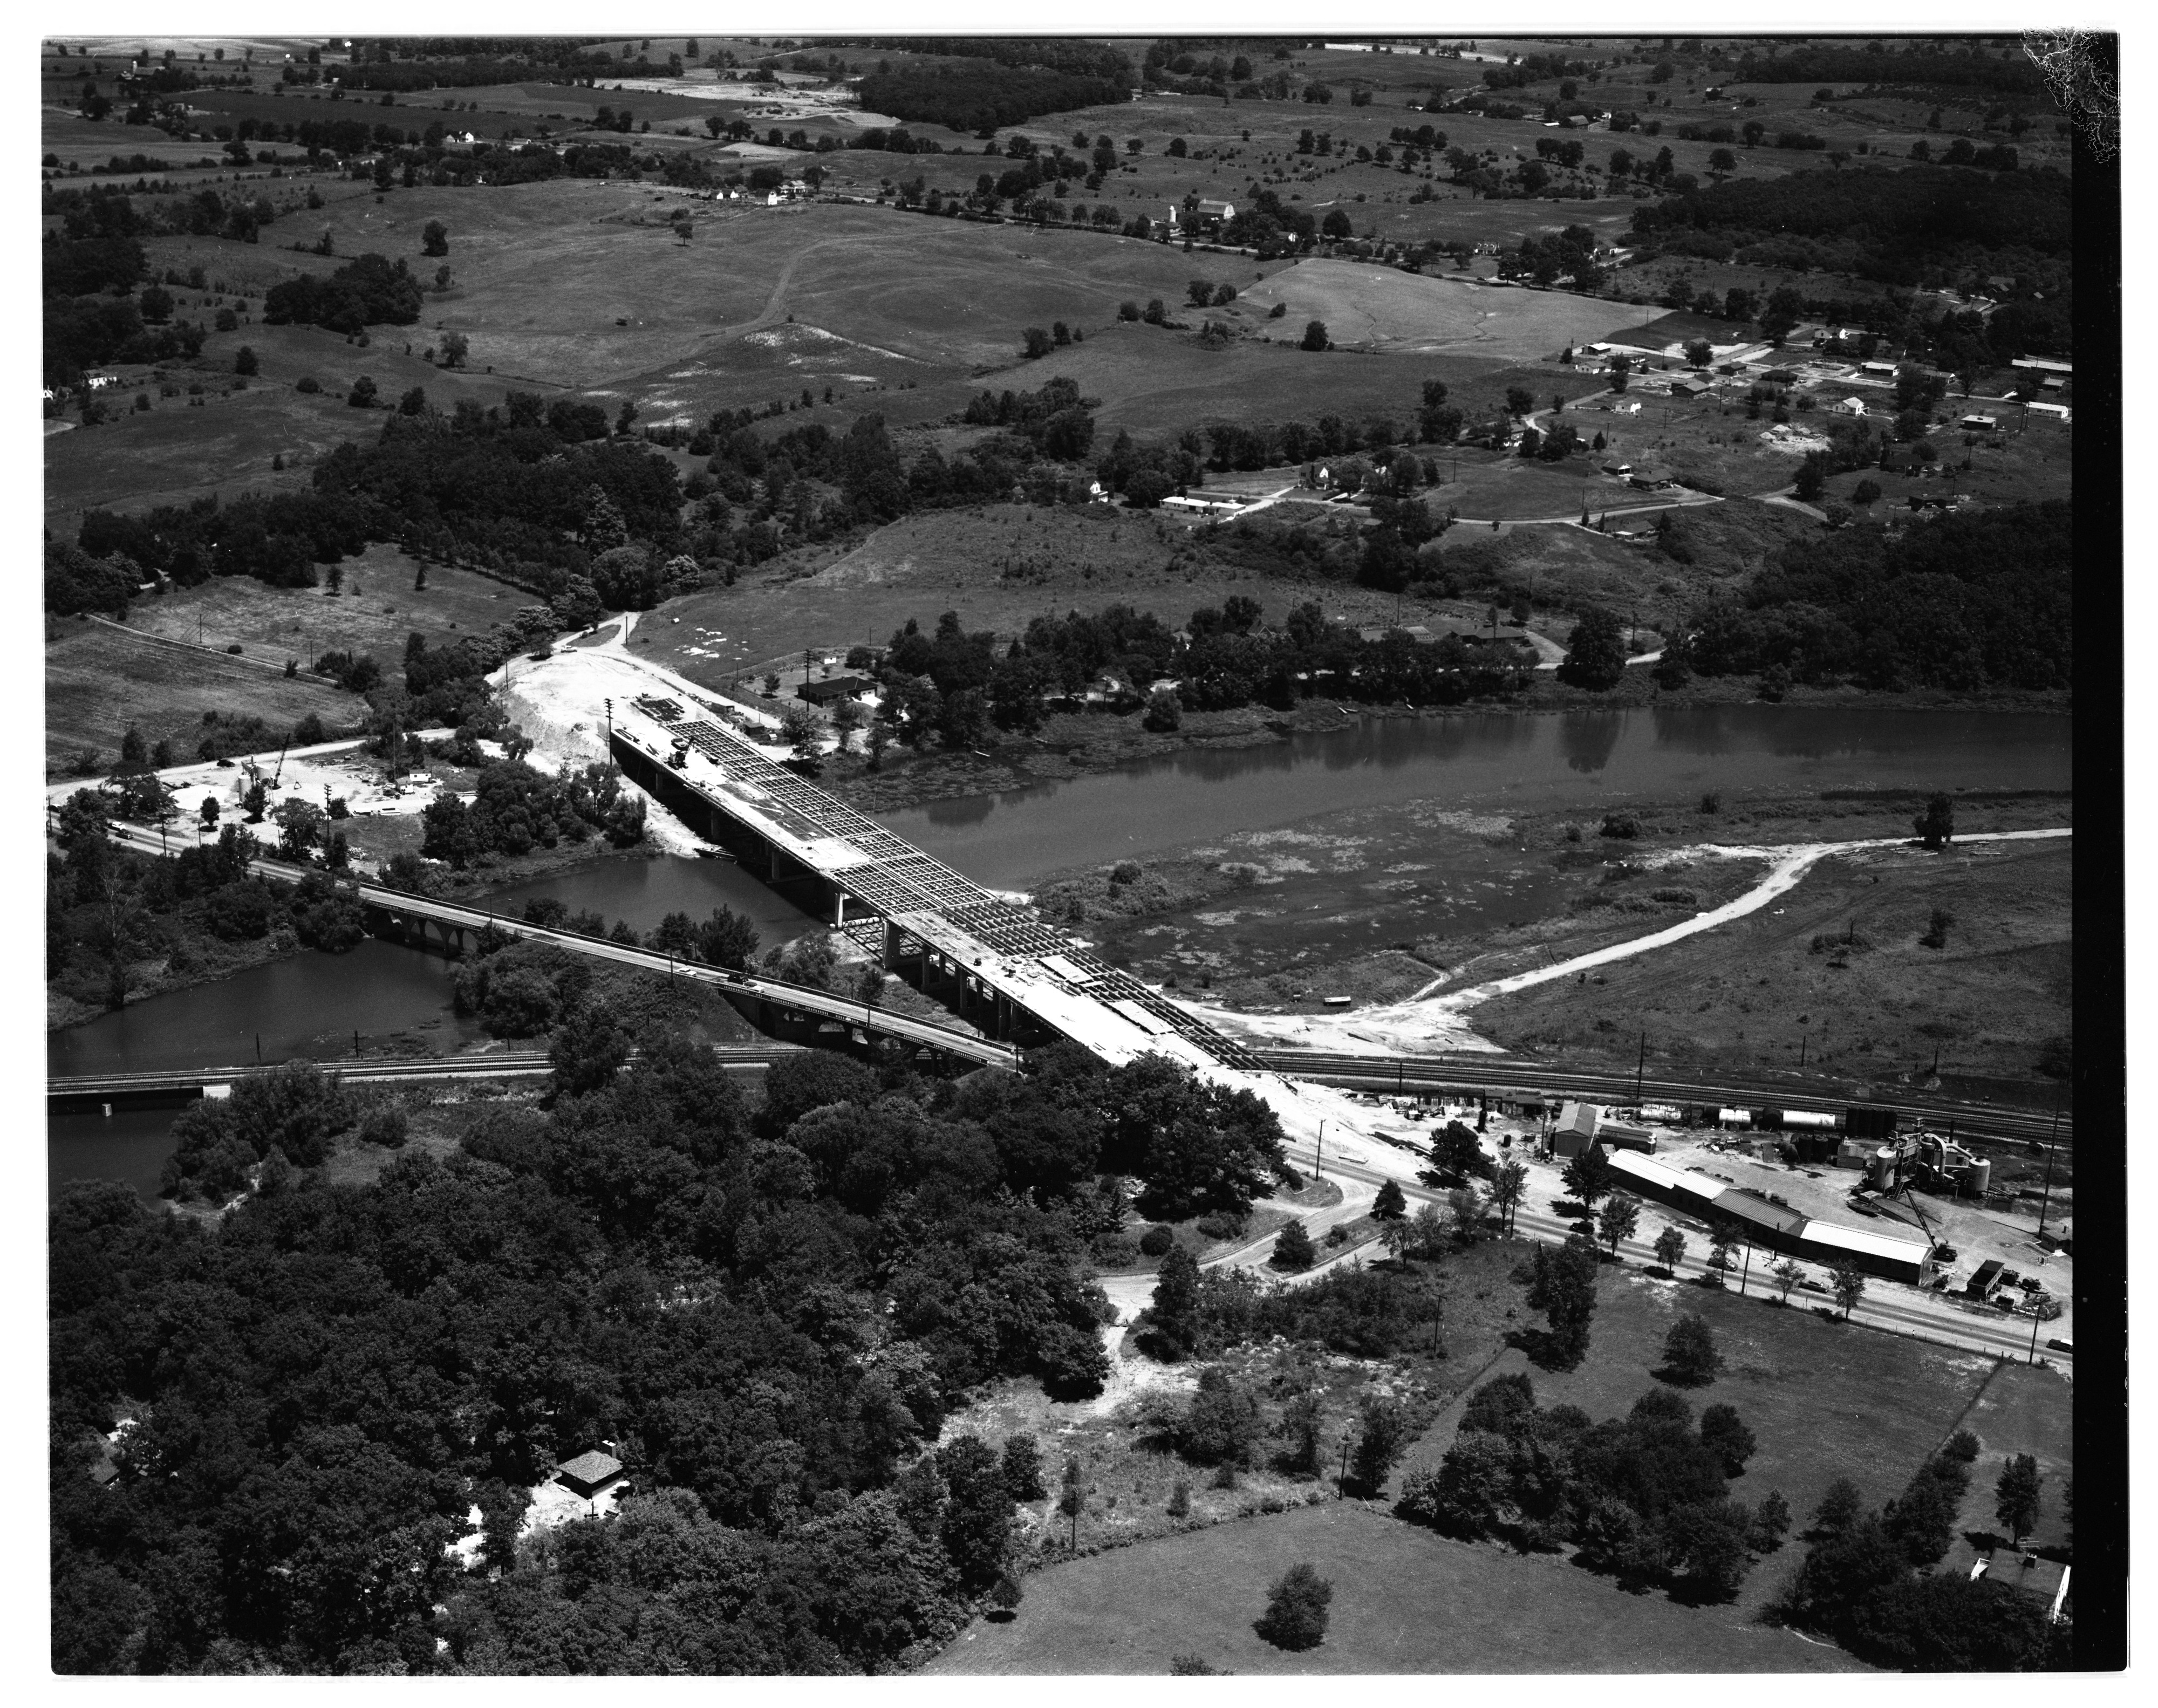 Aerial Photograph of Whitmore Lake Bridge Construction, July 1955 image